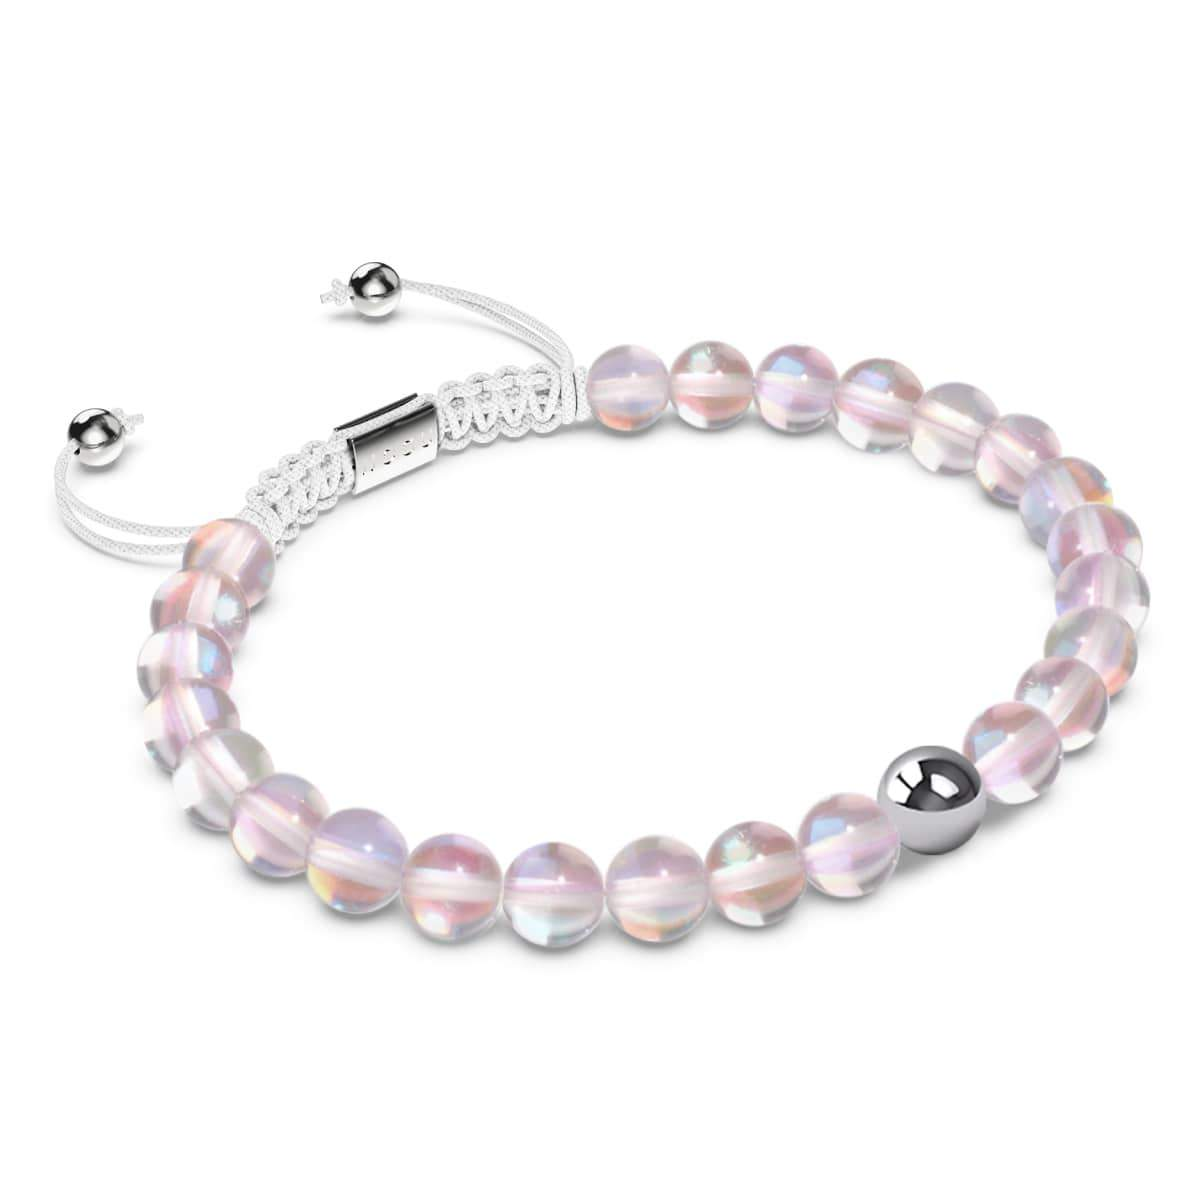 Cotton Candy Crystal | Silver | Mermaid Glass Macrame Bead Bracelet